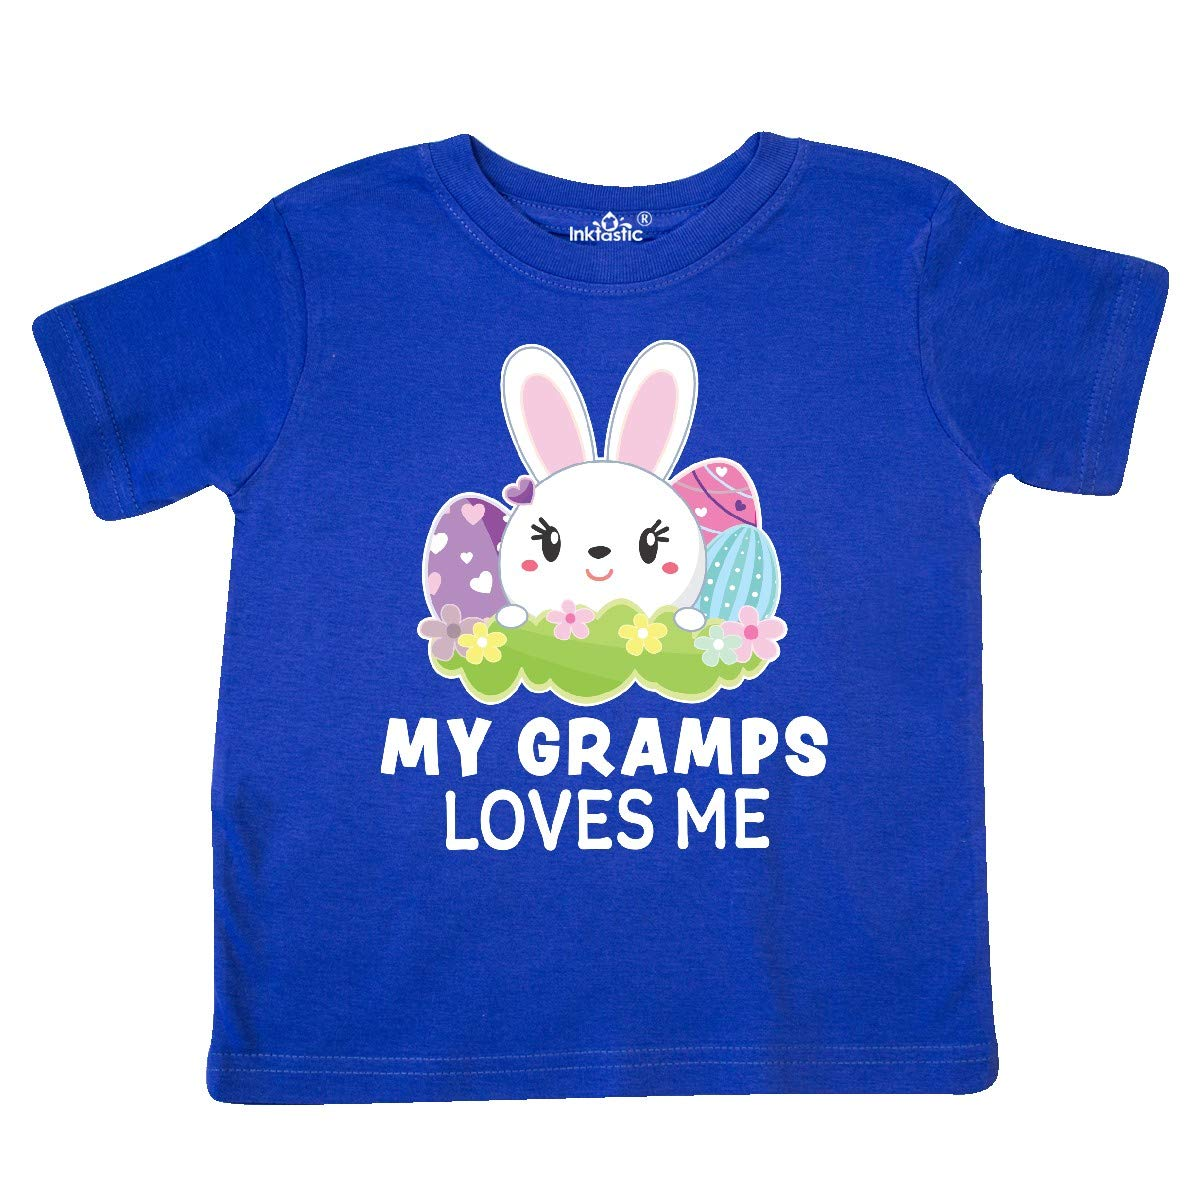 inktastic My Gramps Loves Me with Bunny and Easter Eggs Toddler T-Shirt